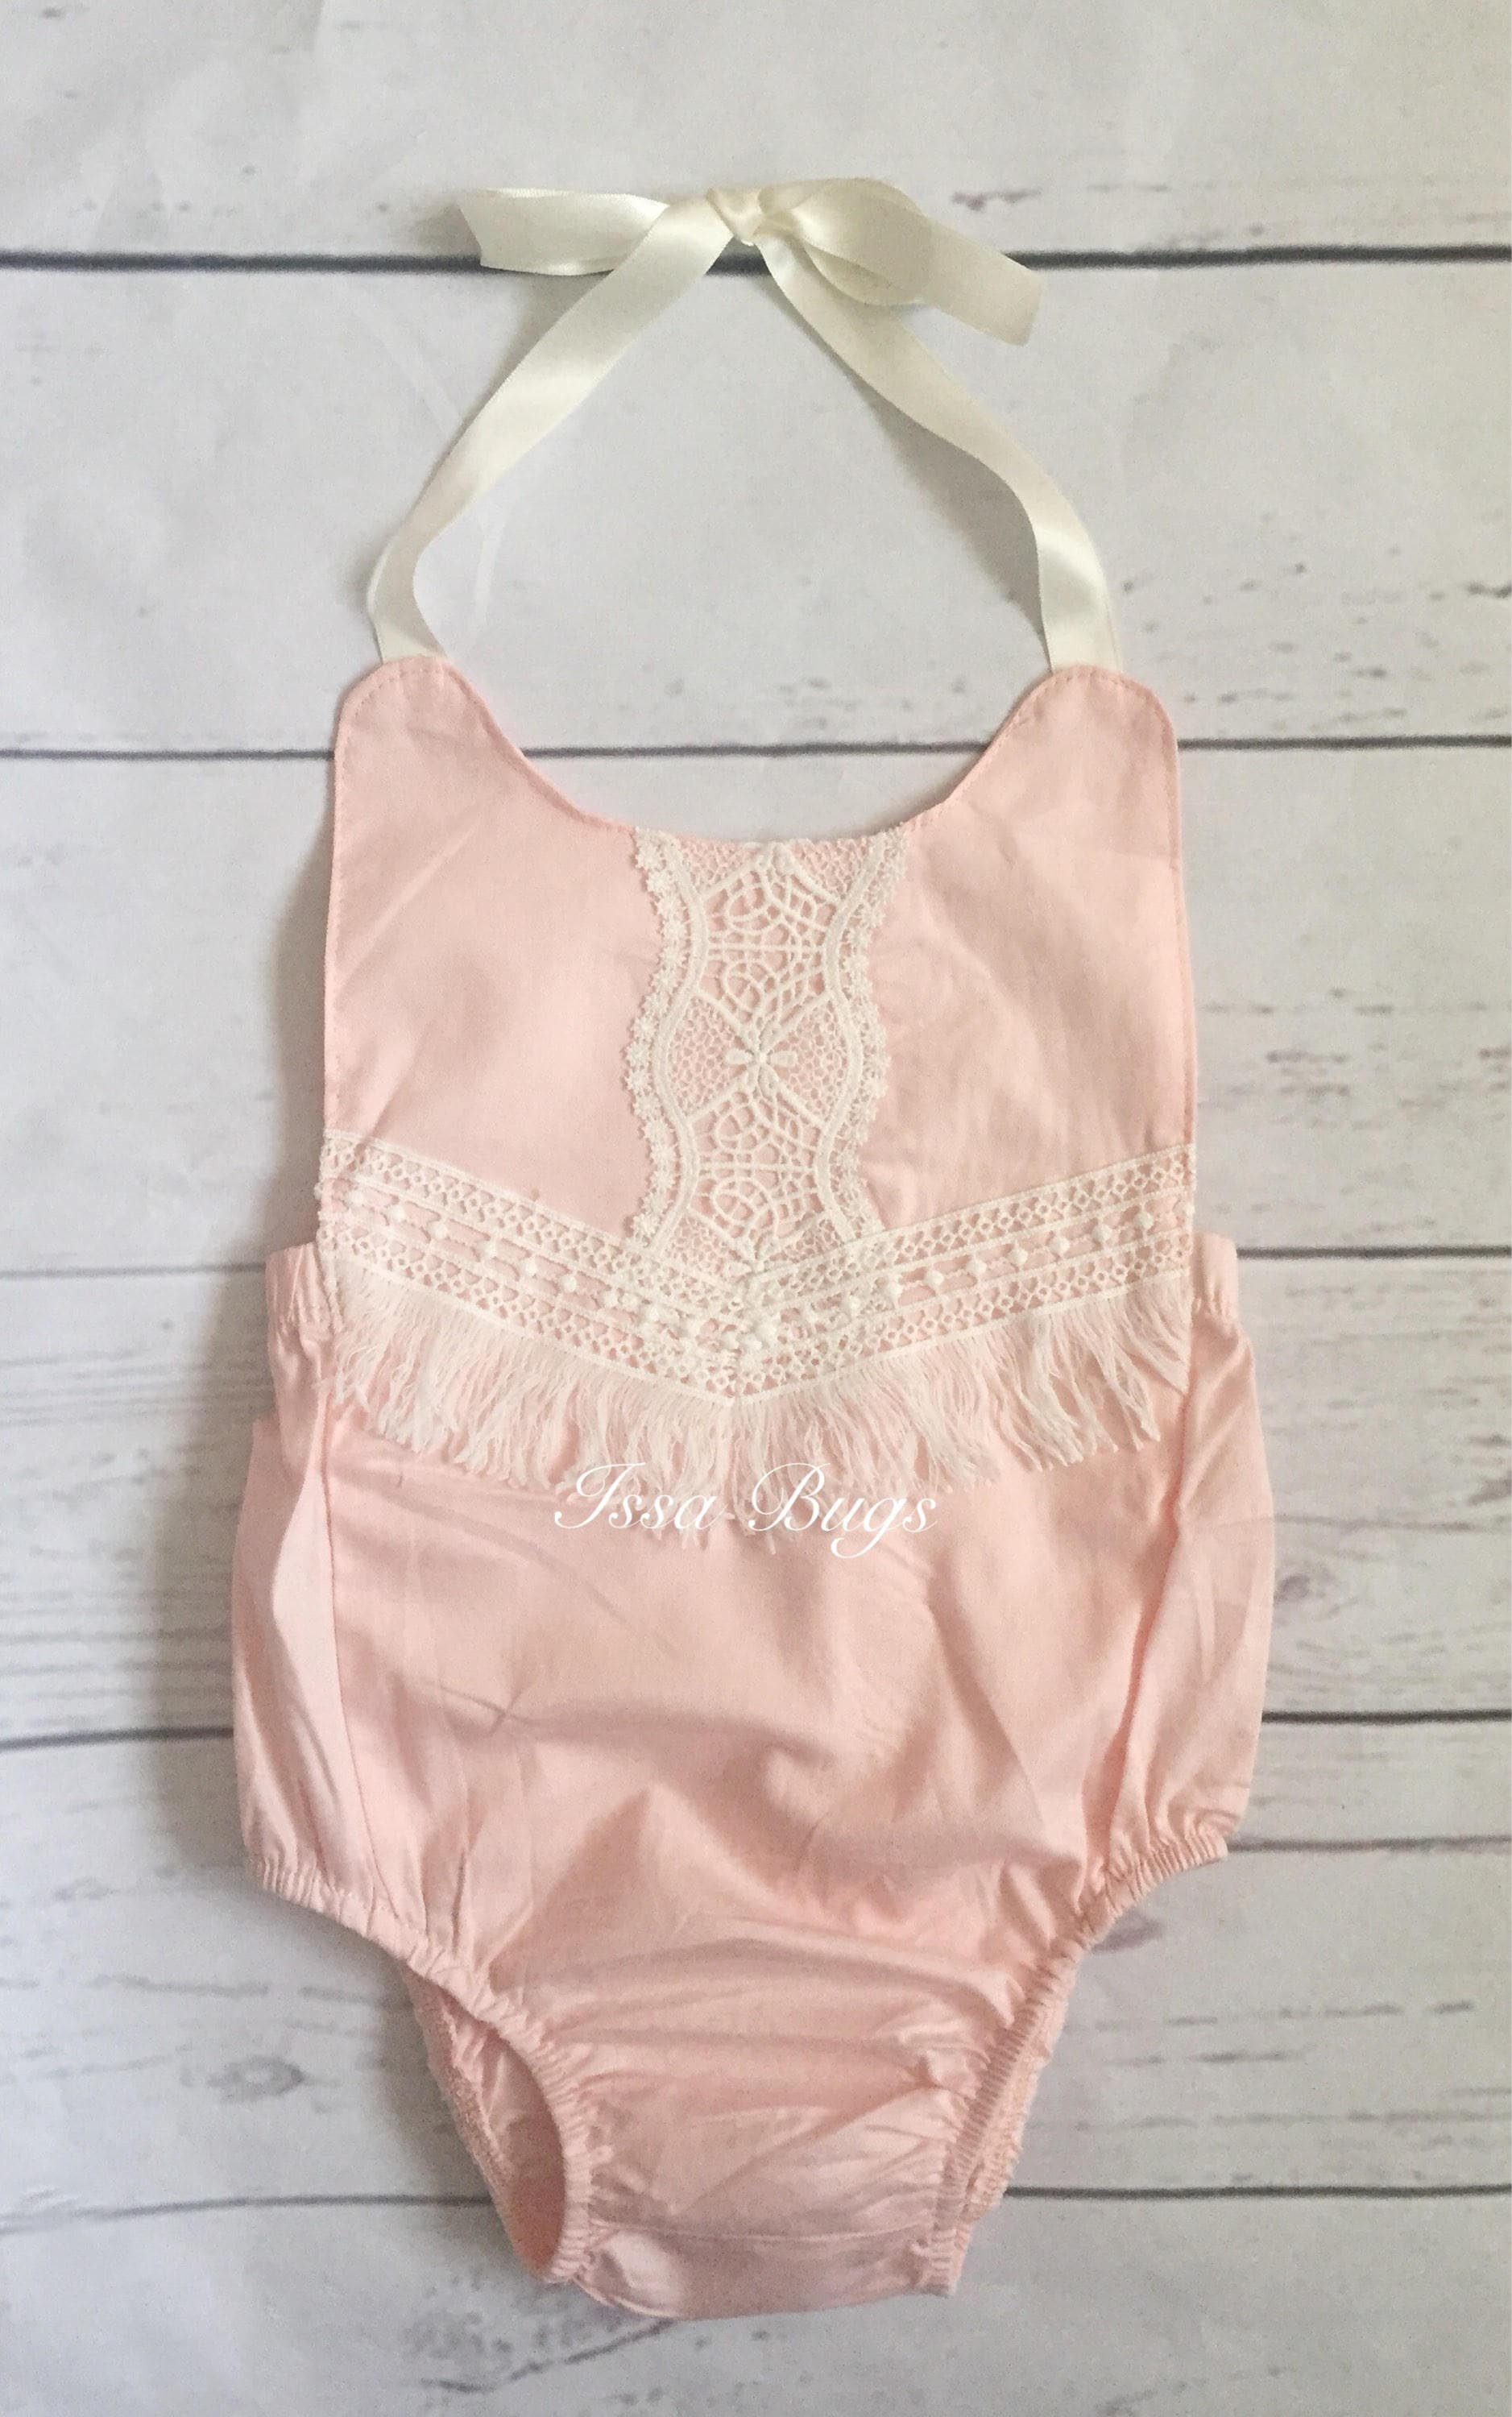 Baby girl outfit baby girl clothes baby romper pink bubble romper